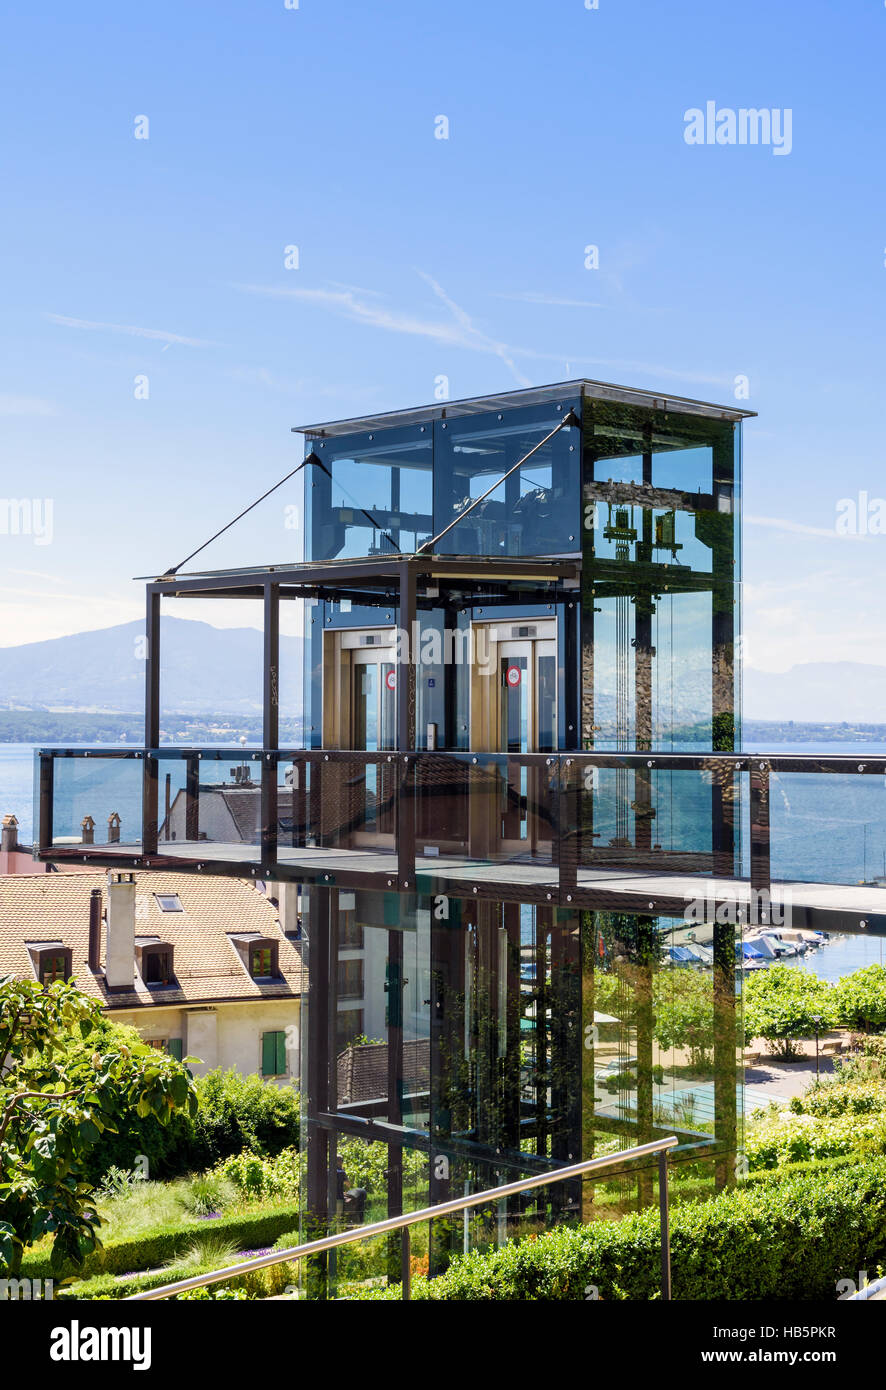 Panoramic glass and steel outdoor elevator leading to an elevated walkway above the town of  Nyon, Vaud, Switzerland - Stock Image